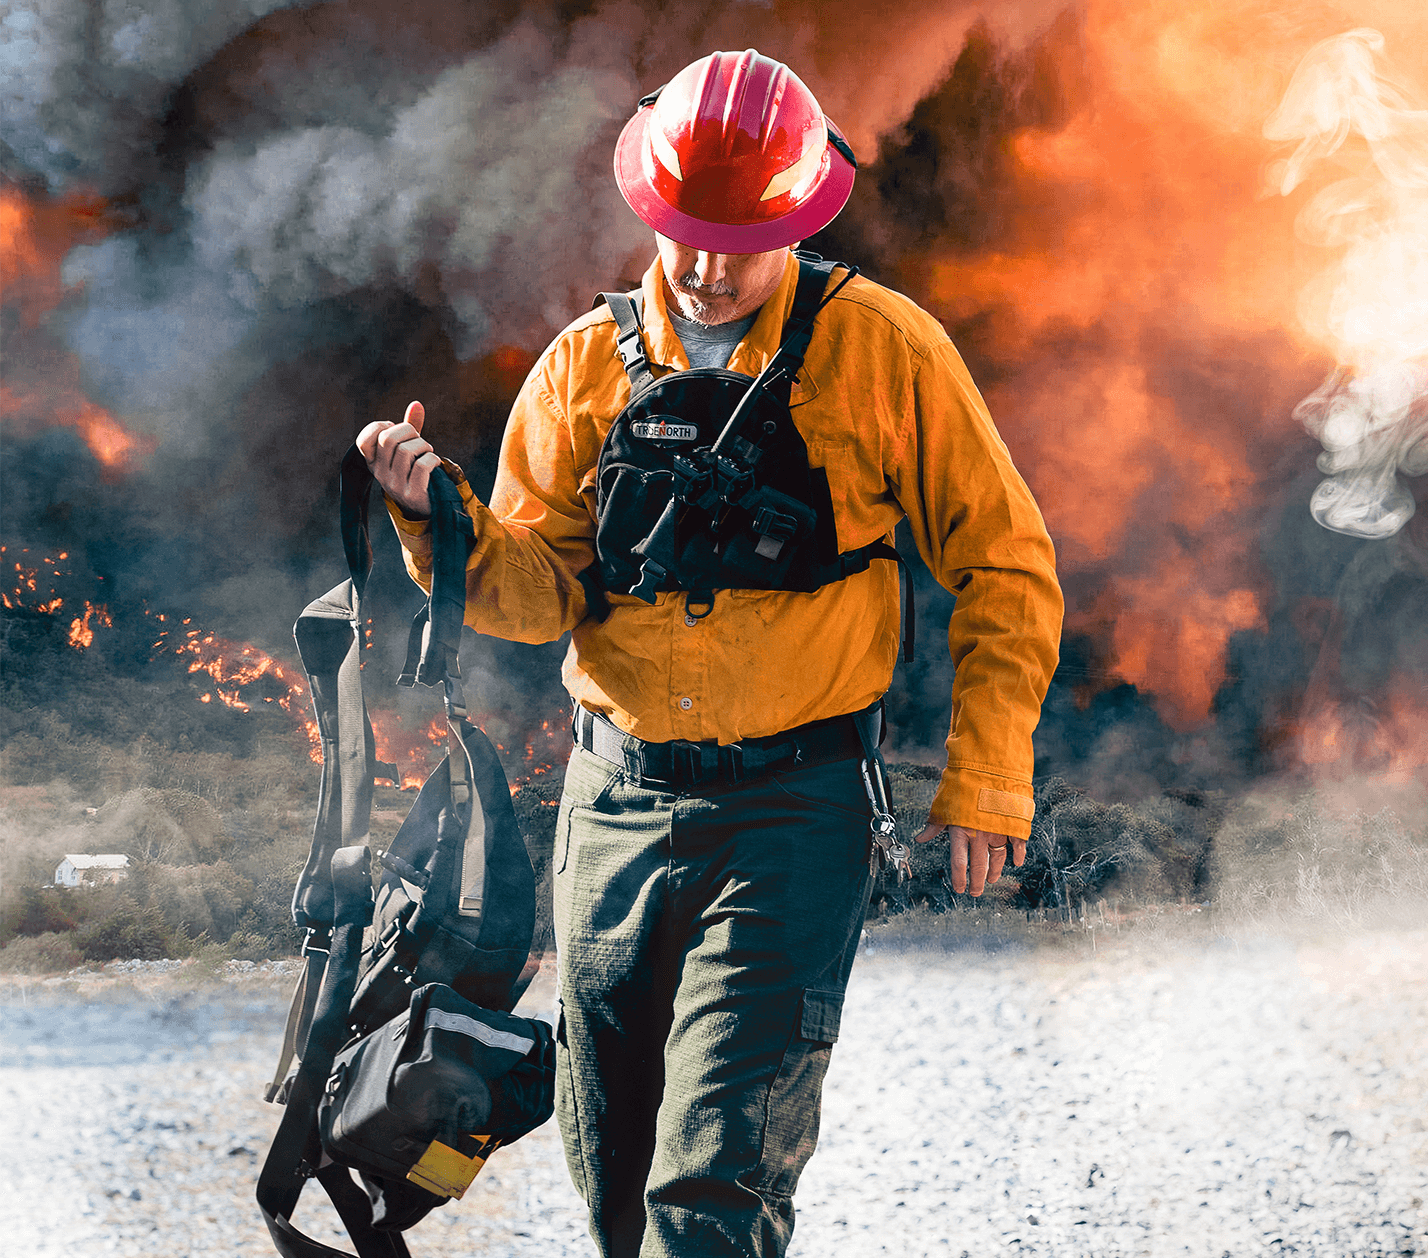 Gear up for 2019 wildland firefighting now | FireRescue1